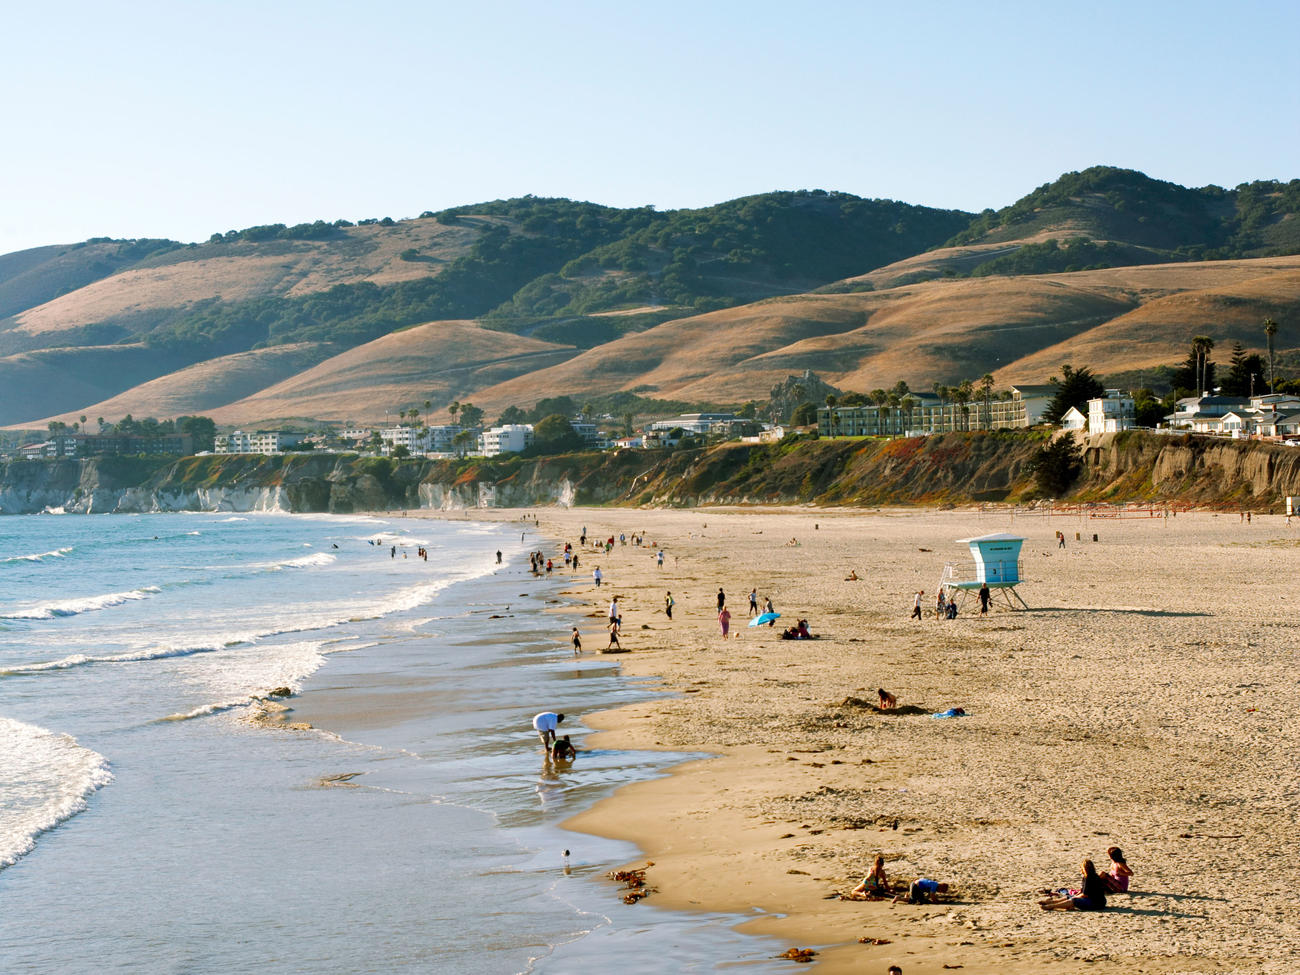 Cheap beach vacation spots california for The cheapest beach vacation